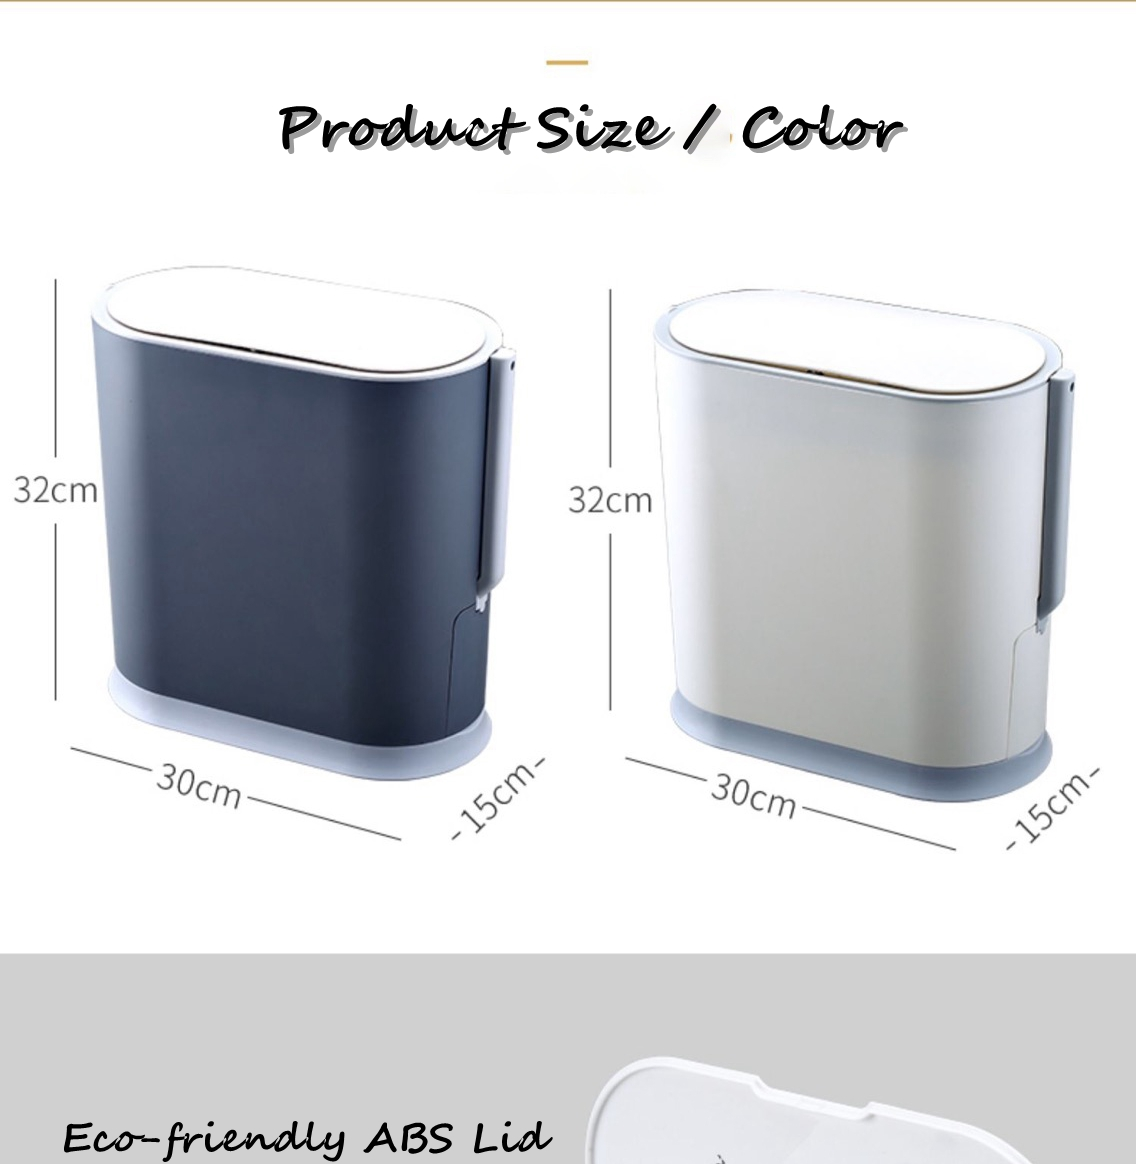 Toilet Waste Bin for Home